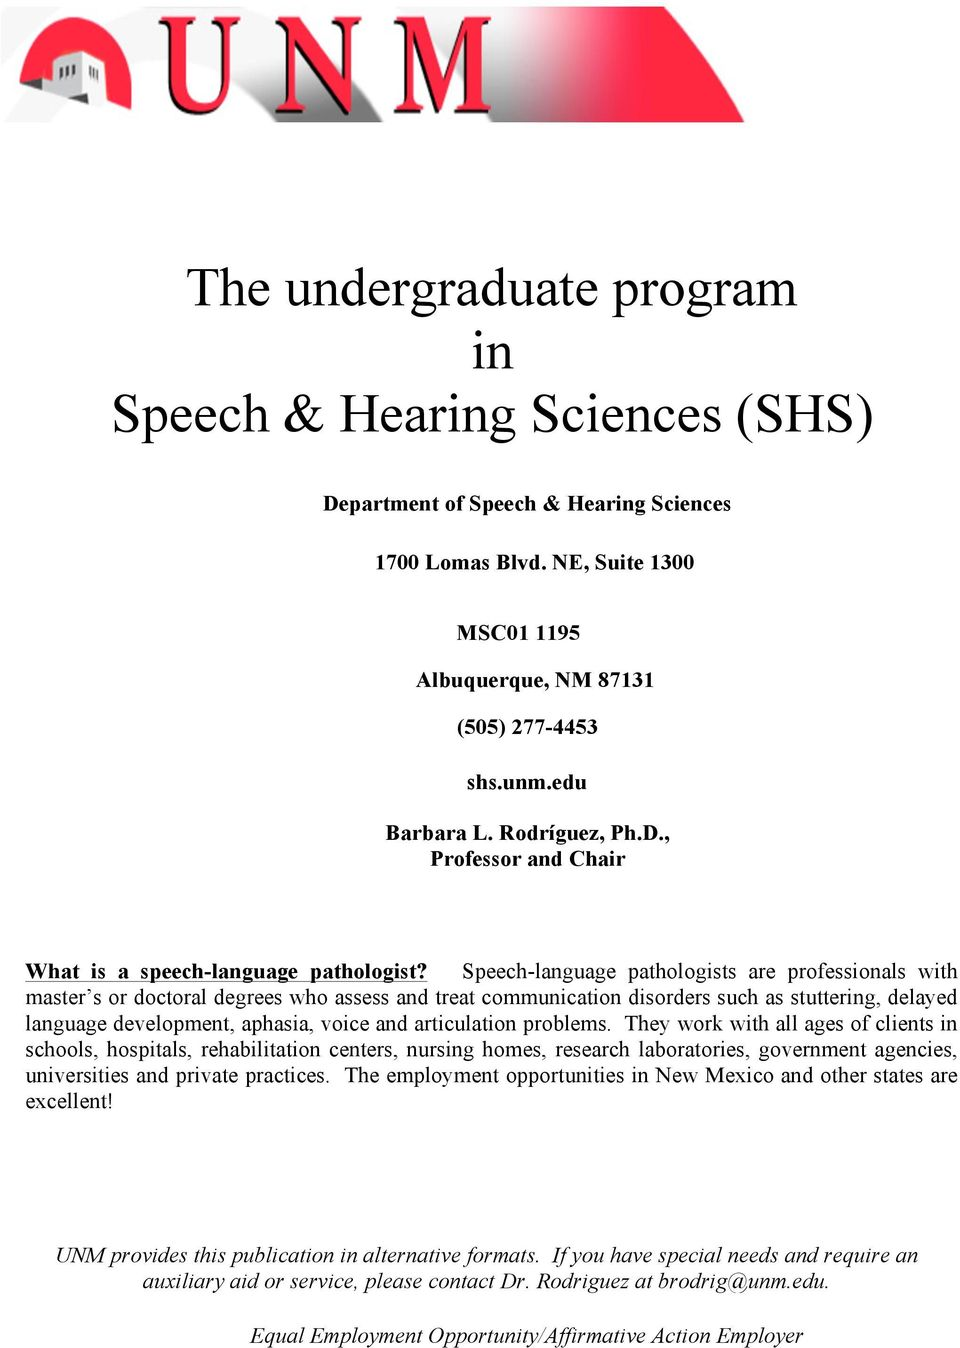 Speech-language pathologists are professionals with master s or doctoral degrees who assess and treat communication disorders such as stuttering, delayed language development, aphasia, voice and